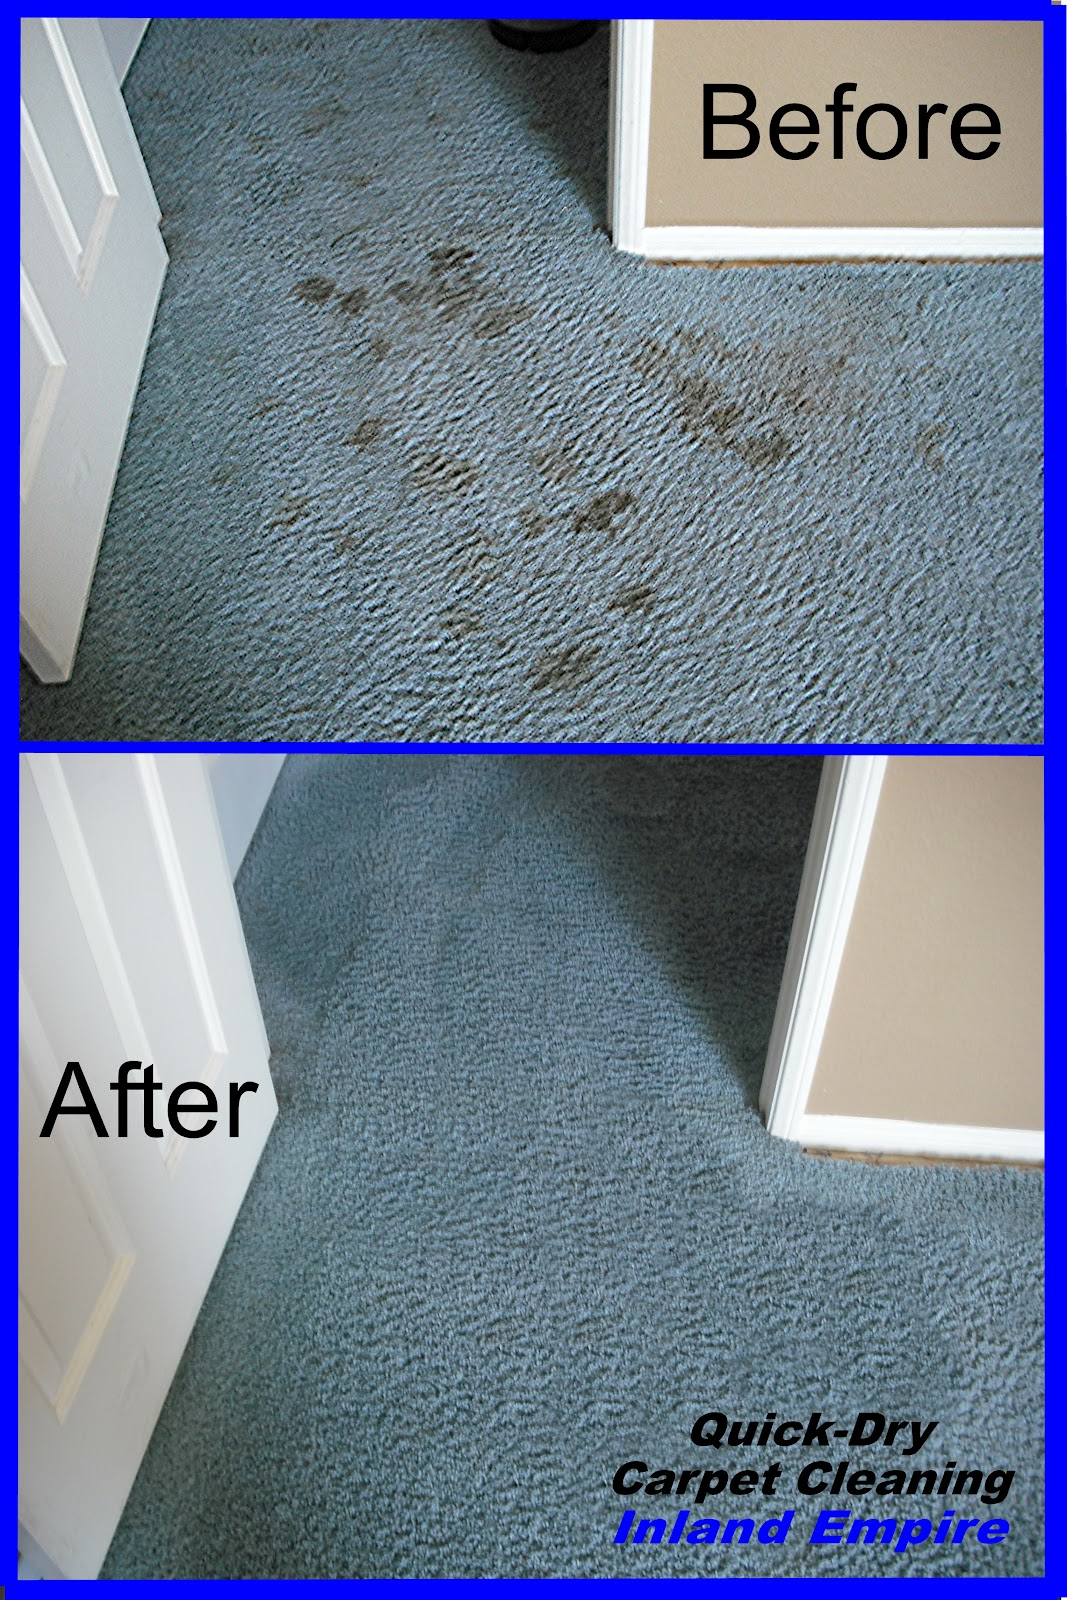 Quick Dry Carpet Cleaning Inland Empire